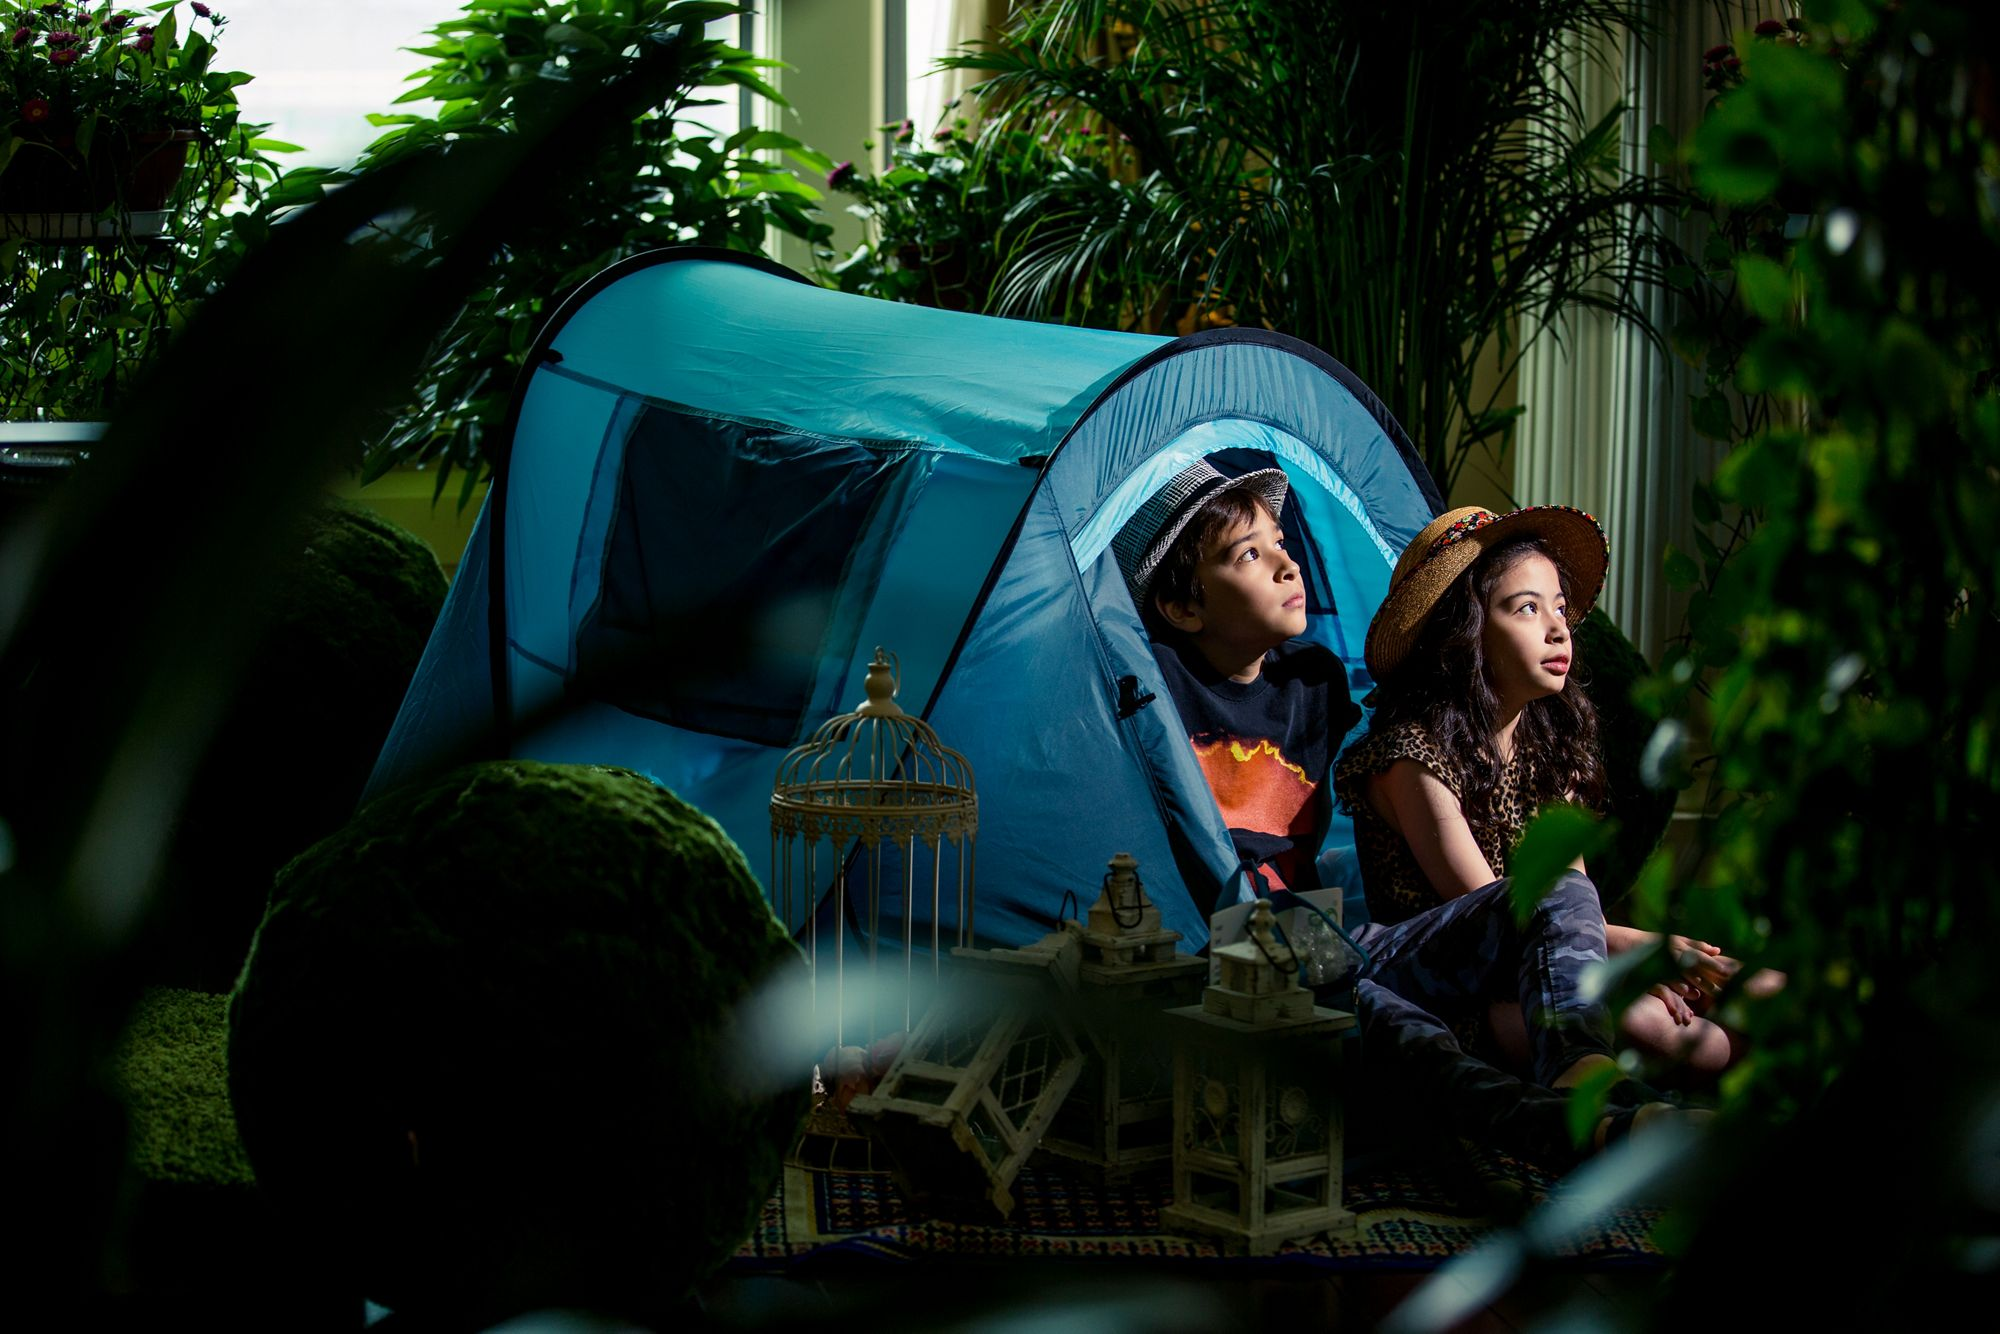 Two kids peek out of an indoor tent surrounded by plants